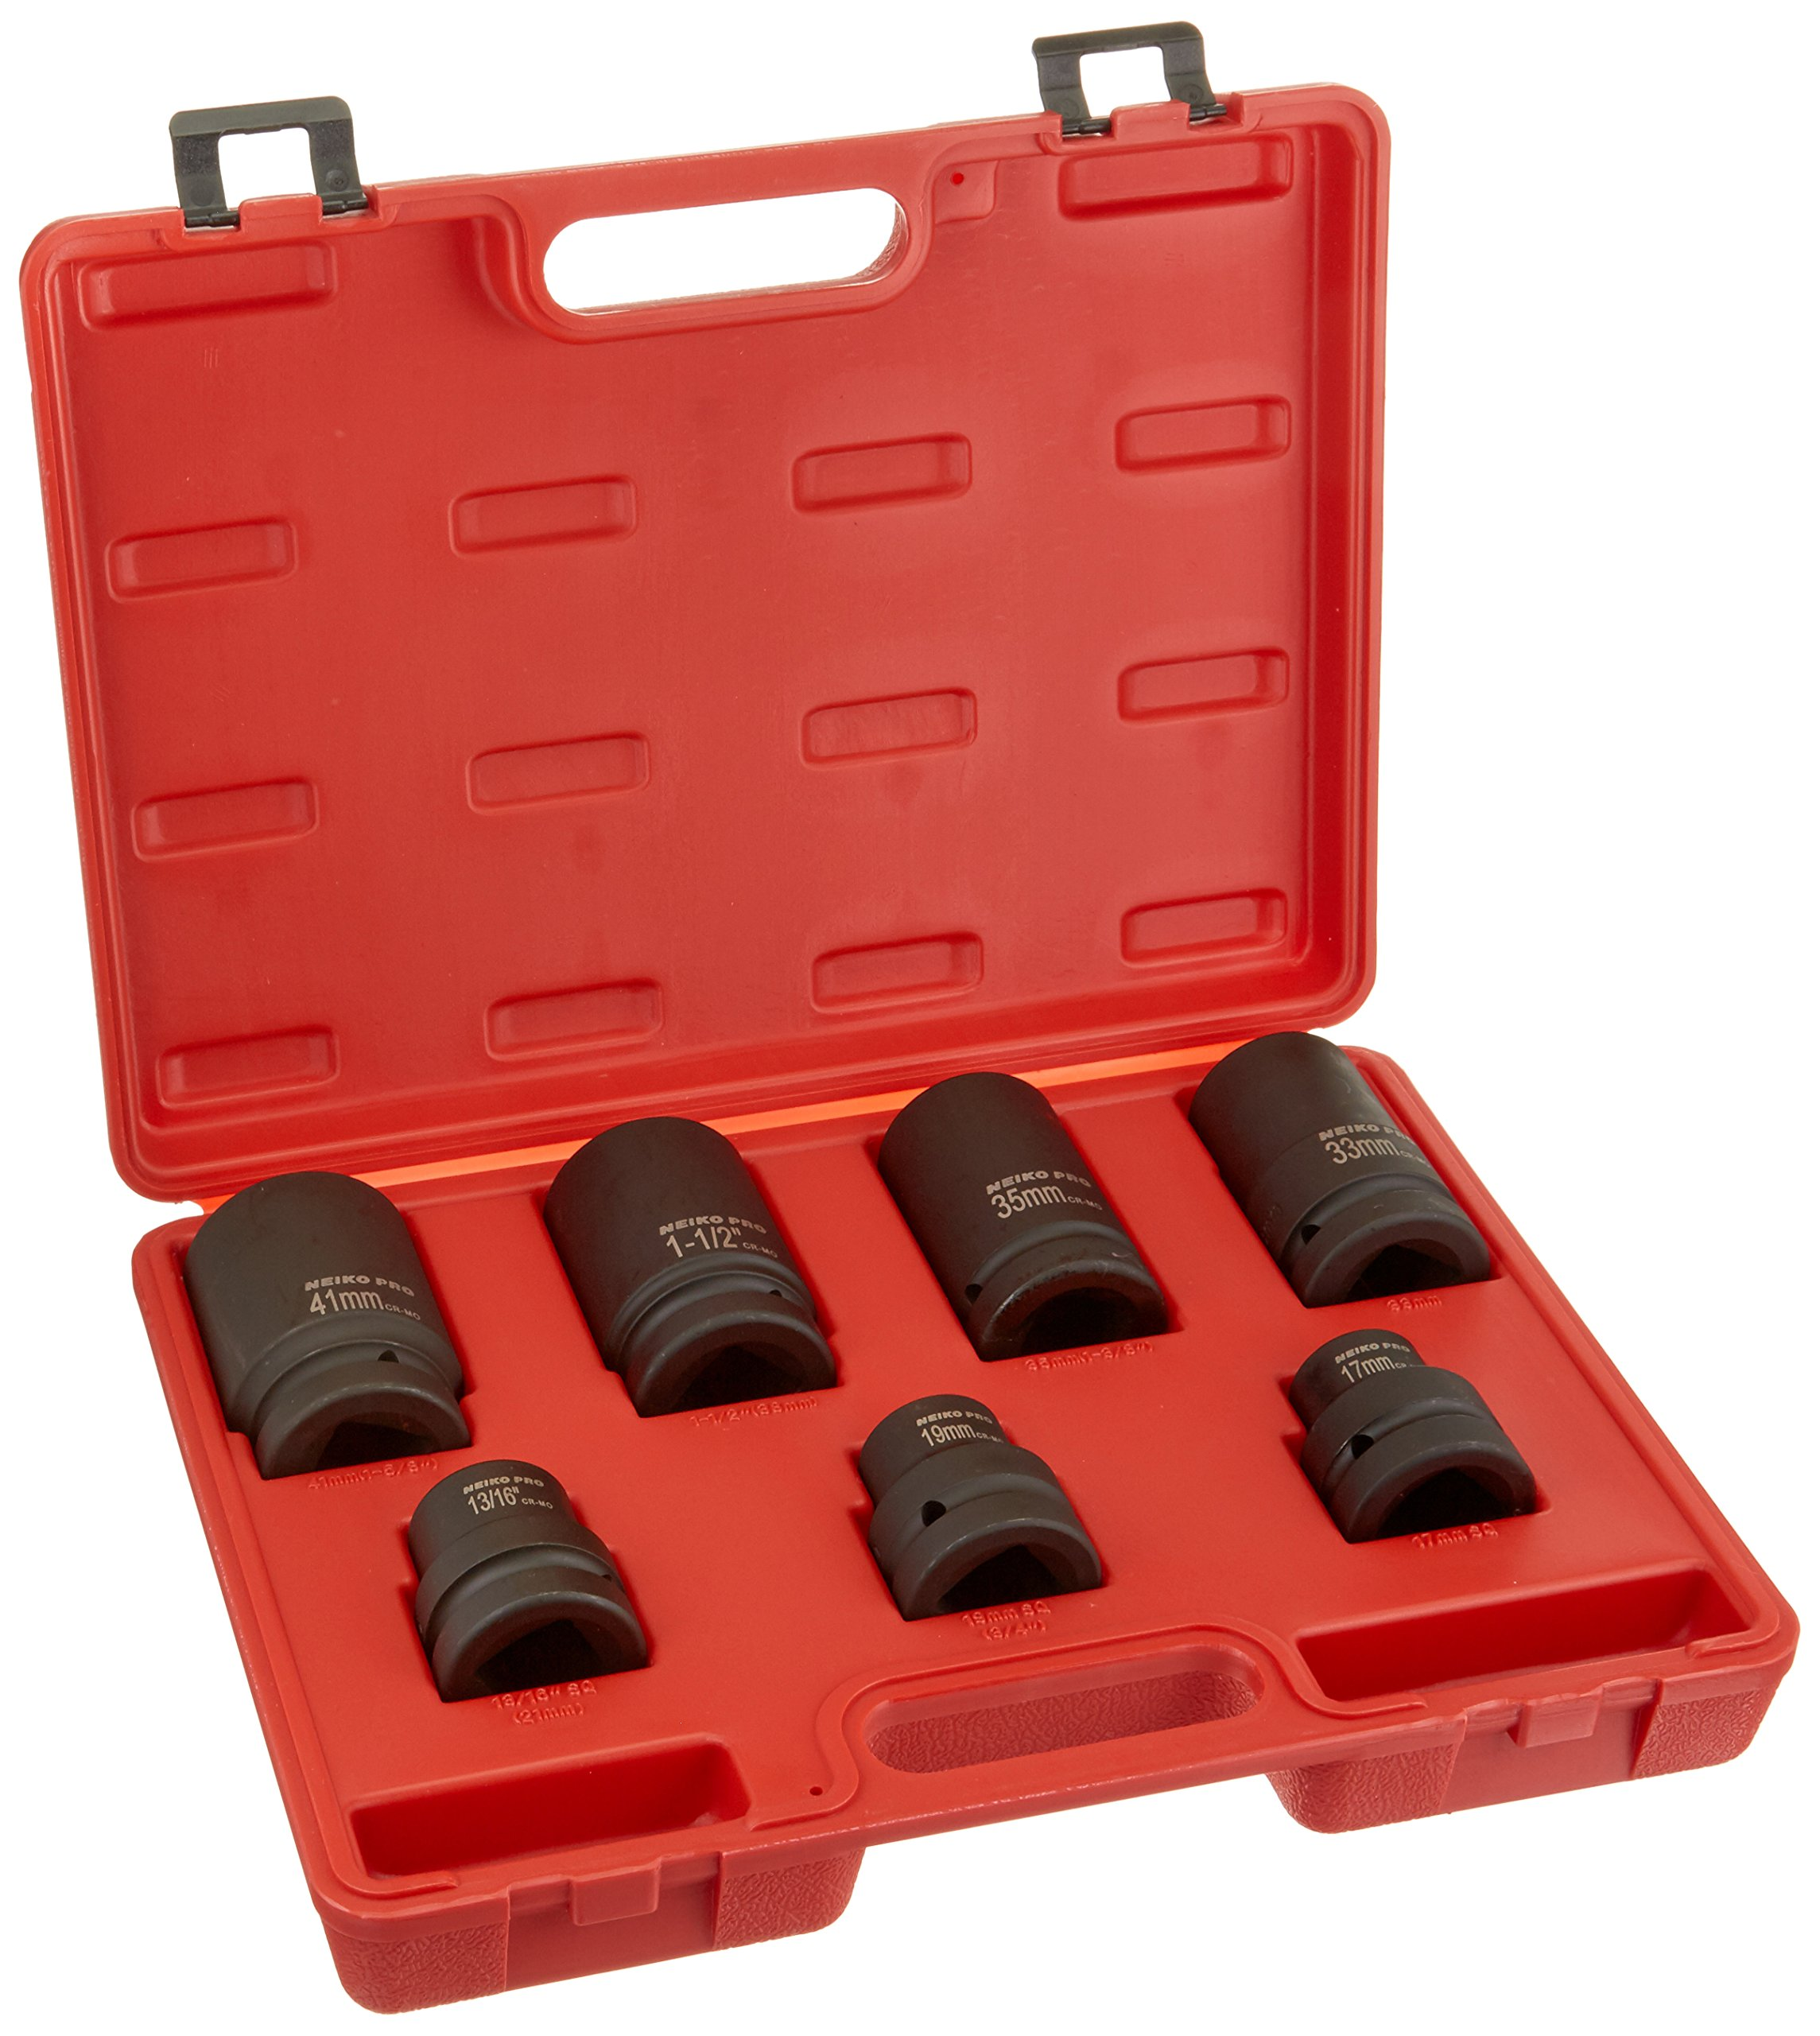 Neiko 02487B Cr-Mo 1'' Drive Impact Socket Set for Truck and Tire Service by Neiko (Image #1)